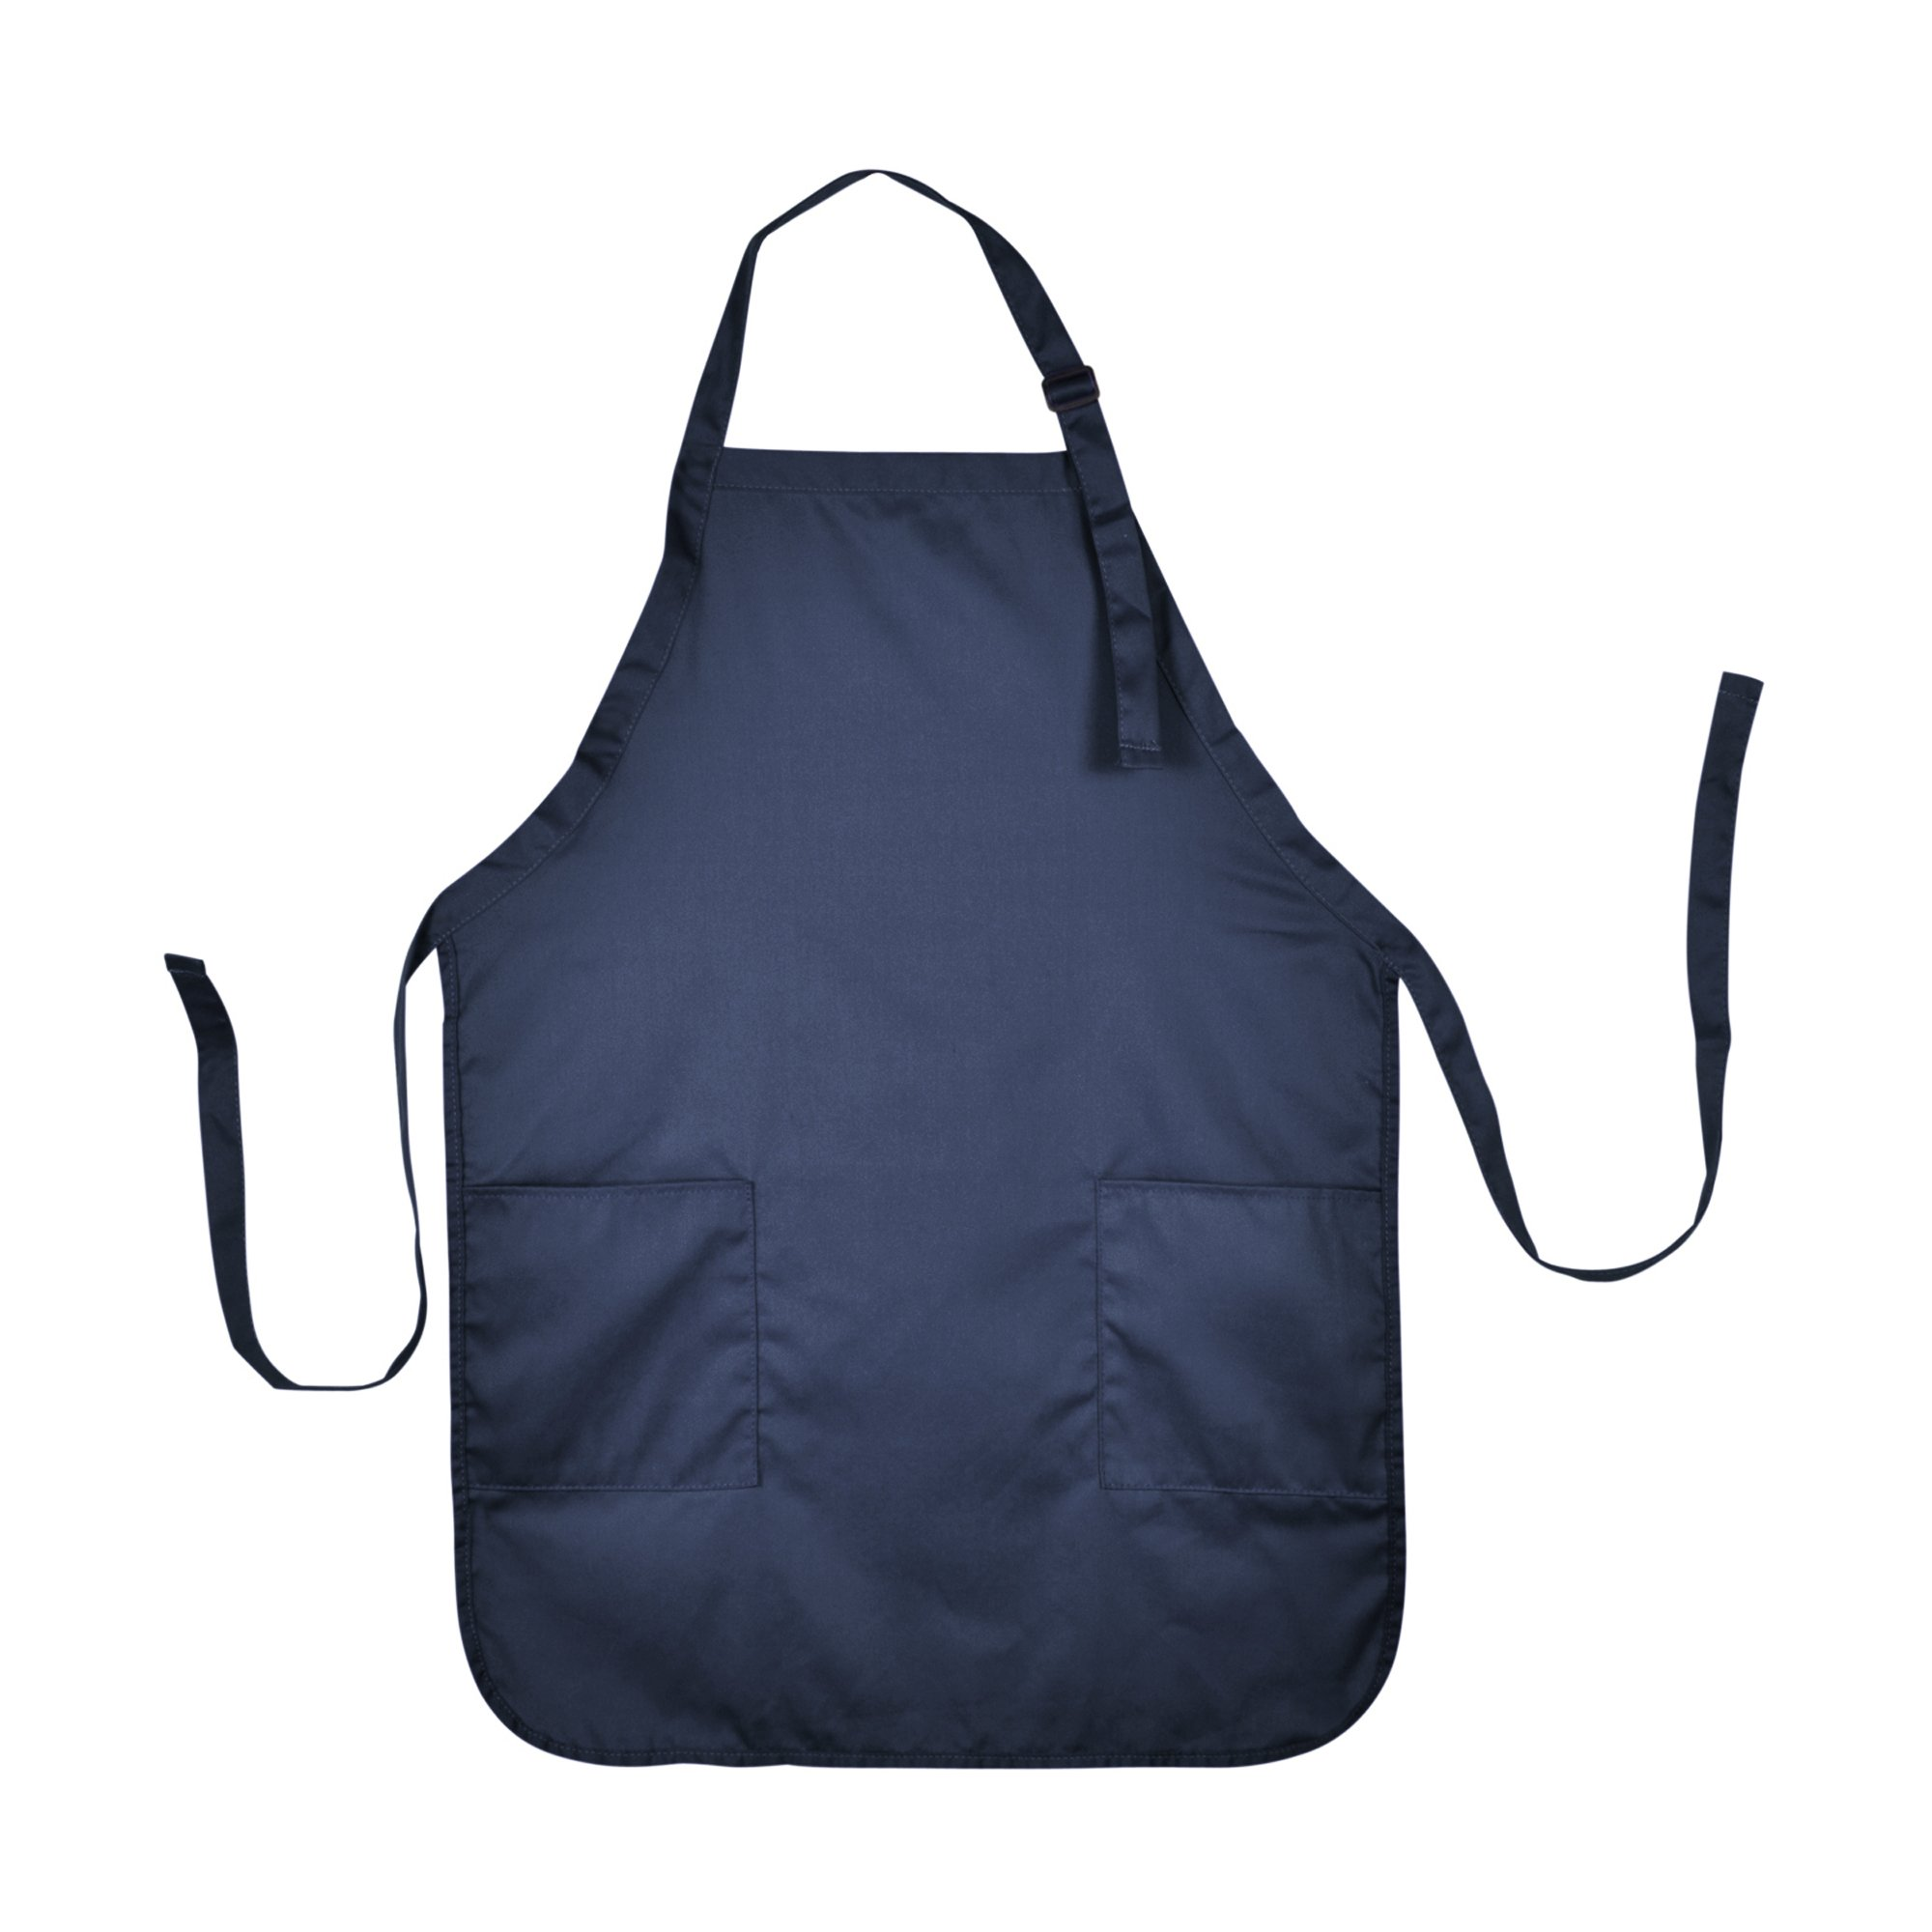 Apron Commercial Restaurant Home Bib Spun Poly Cotton Kitchen Aprons (2 Pockets) in Navy Blue 72 PACK by DALIX (Image #1)